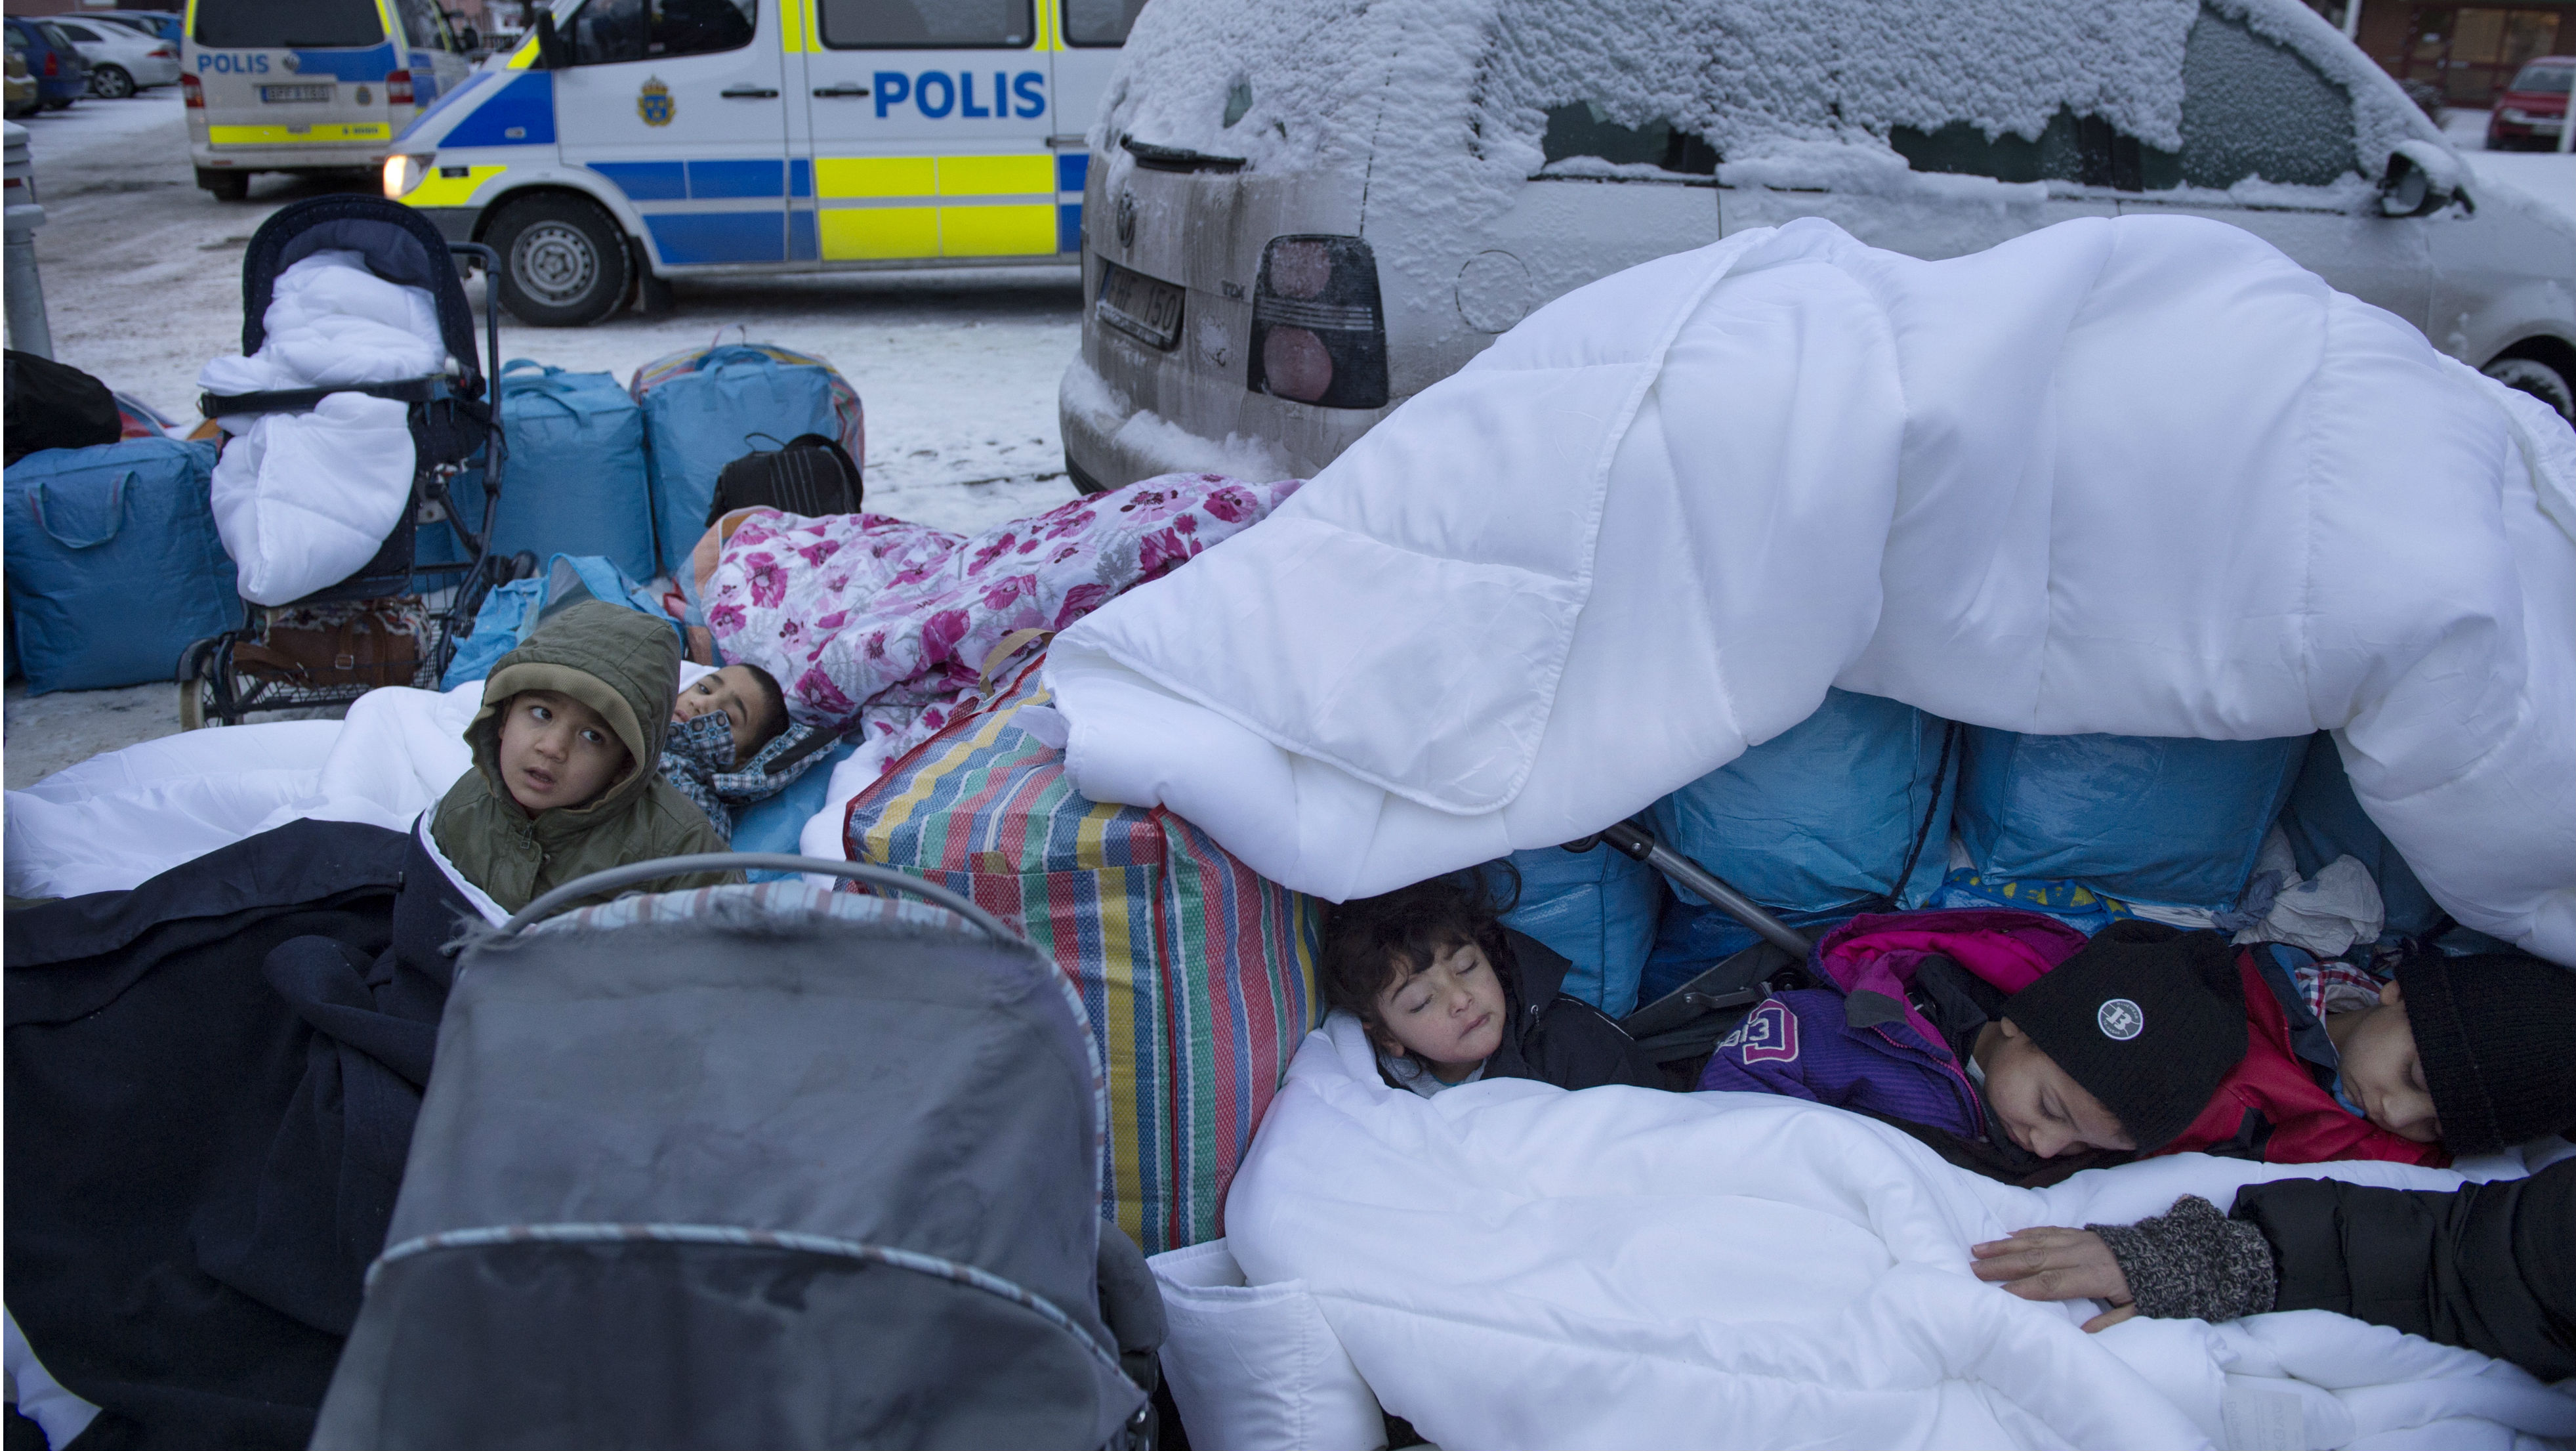 Children Nor, Saleh and Hajaj Fatema from Syria sleep outside the Swedish Migration Board in Marsta, outside Stockholm, Sweden. Picture taken January 8, 2016. REUTERS/Jessica Gow/TT NEWS AGENCY ATTENTION EDITORS - THIS IMAGE WAS PROVIDED BY A THIRD PARTY. FOR EDITORIAL USE ONLY. NOT FOR SALE FOR MARKETING OR ADVERTISING CAMPAIGNS. THIS PICTURE IS DISTRIBUTED EXACTLY AS RECEIVED BY REUTERS, AS A SERVICE TO CLIENTS. SWEDEN OUT. NO COMMERCIAL OR EDITORIAL SALES IN SWEDEN. NO COMMERCIAL SALES.